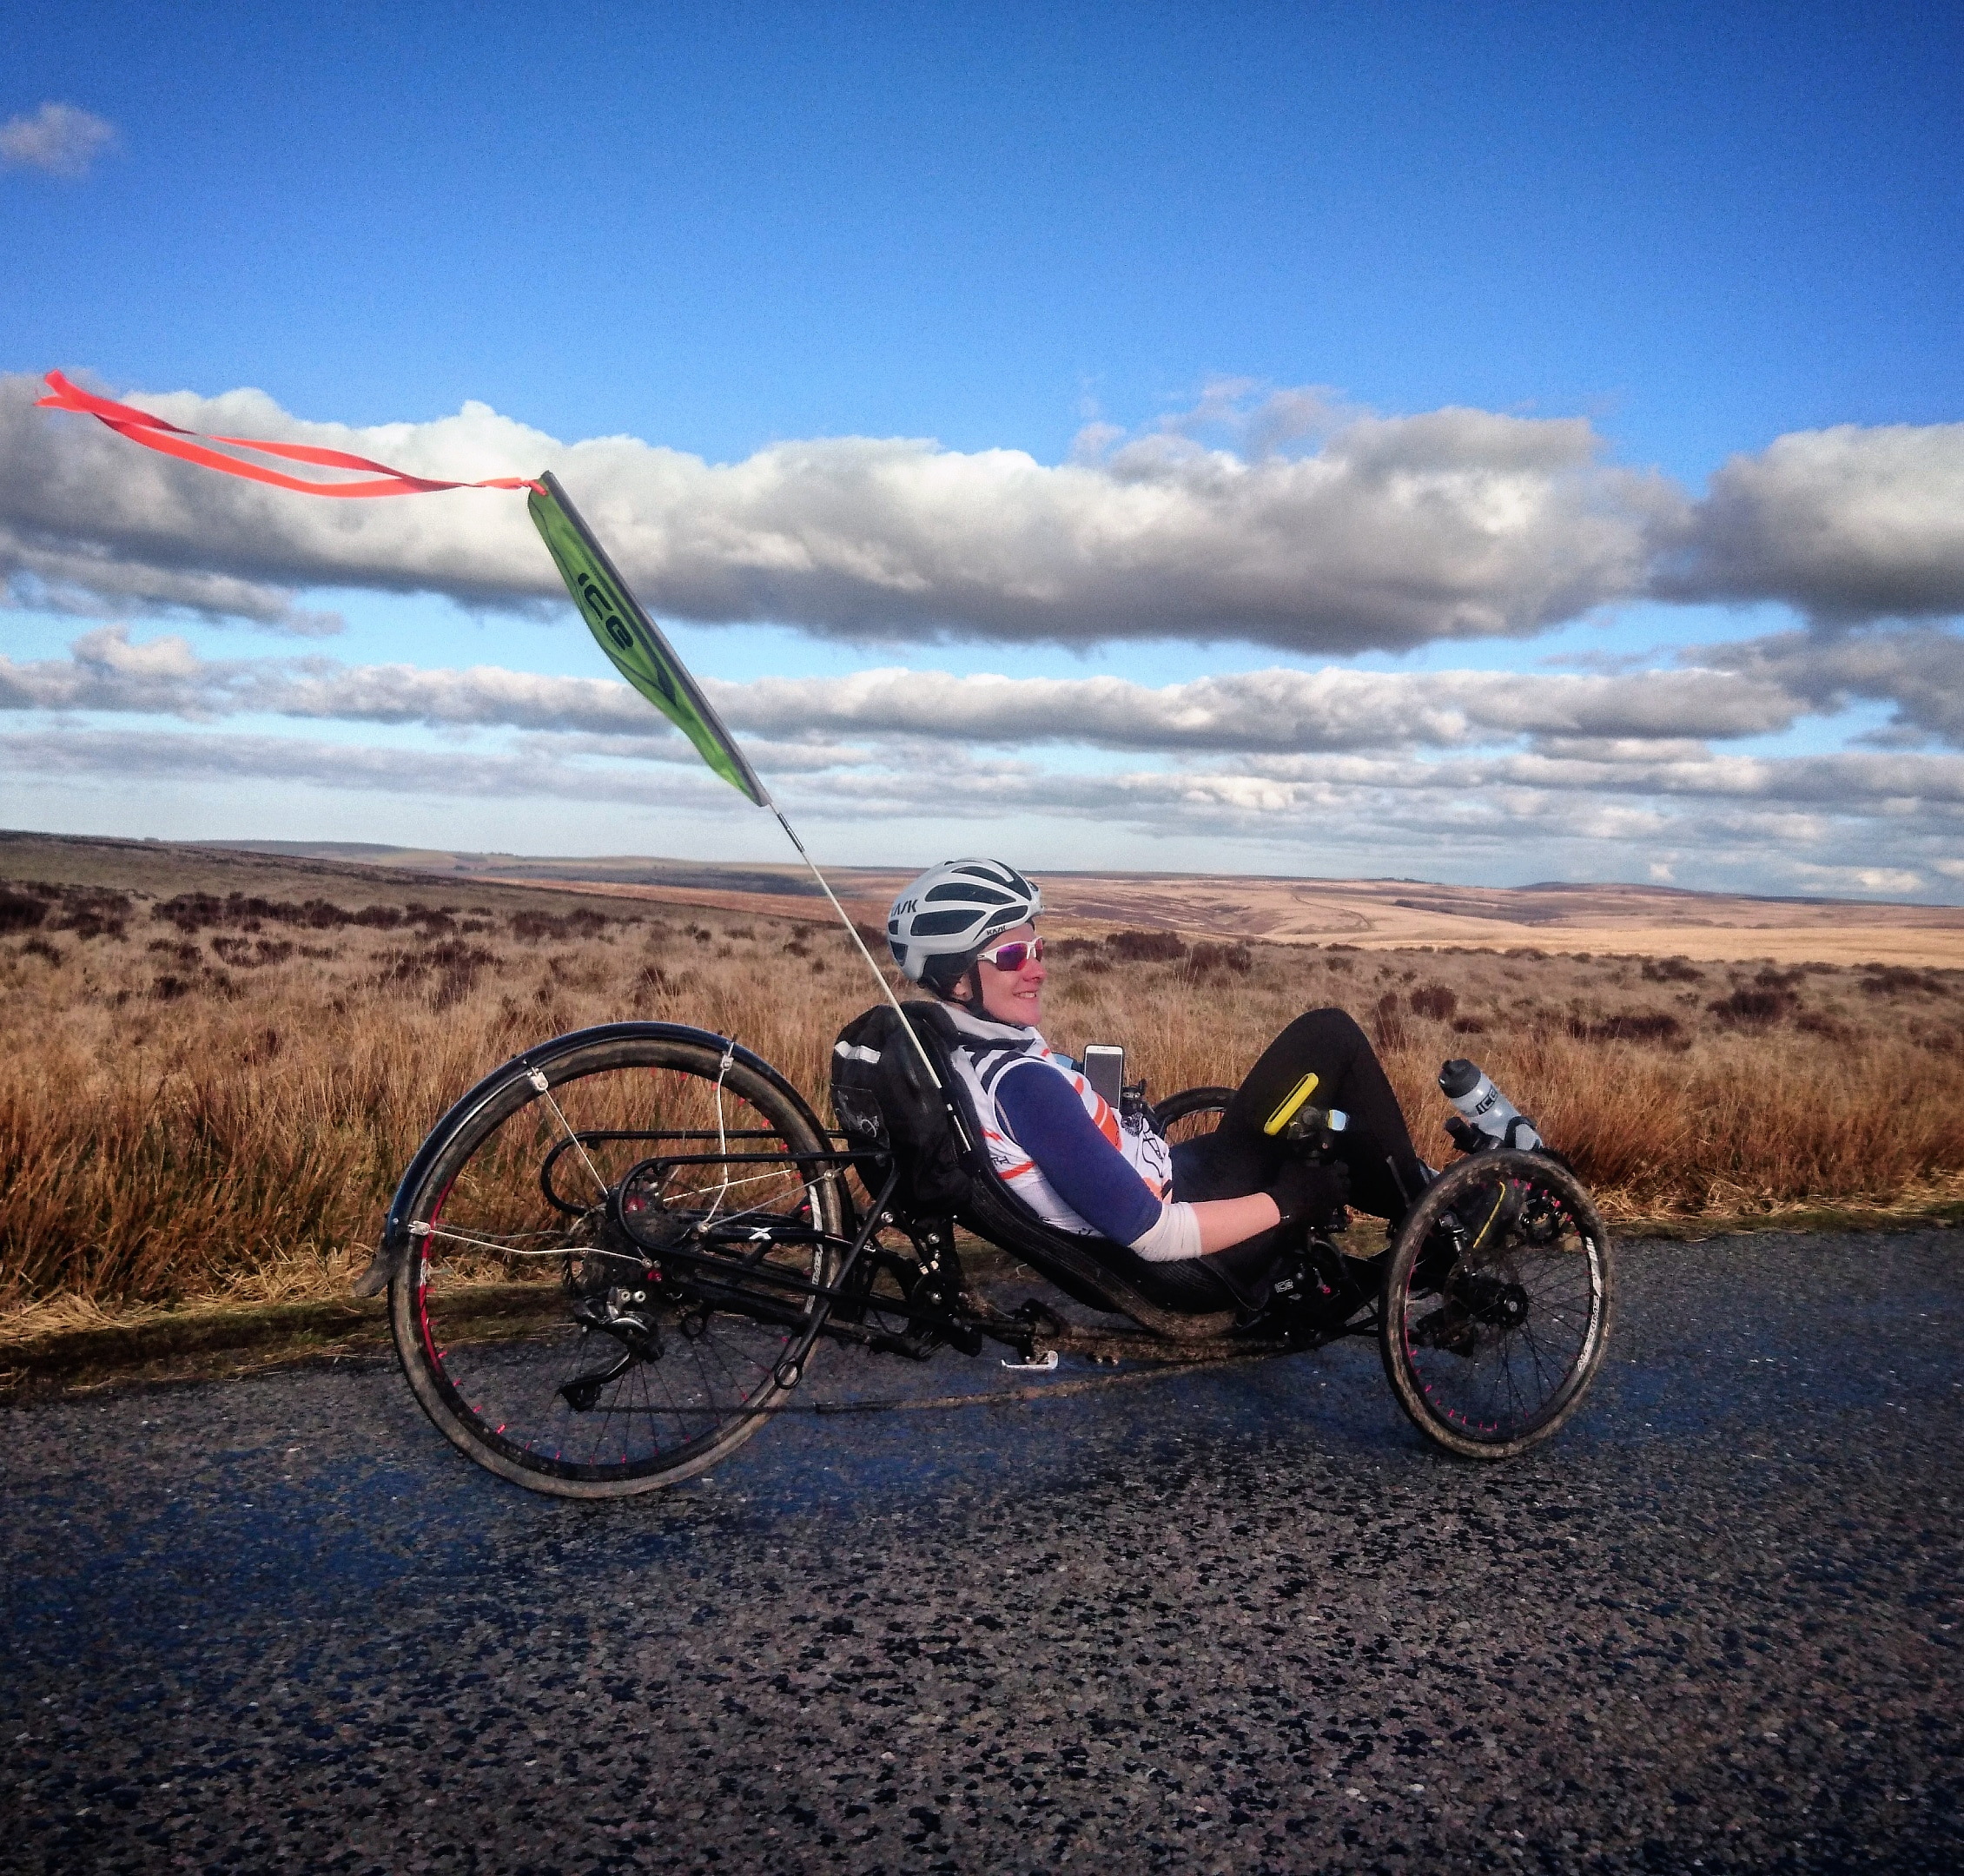 I cycled 5,000 miles round Britain to beat my illness and found kindness I never knew existed